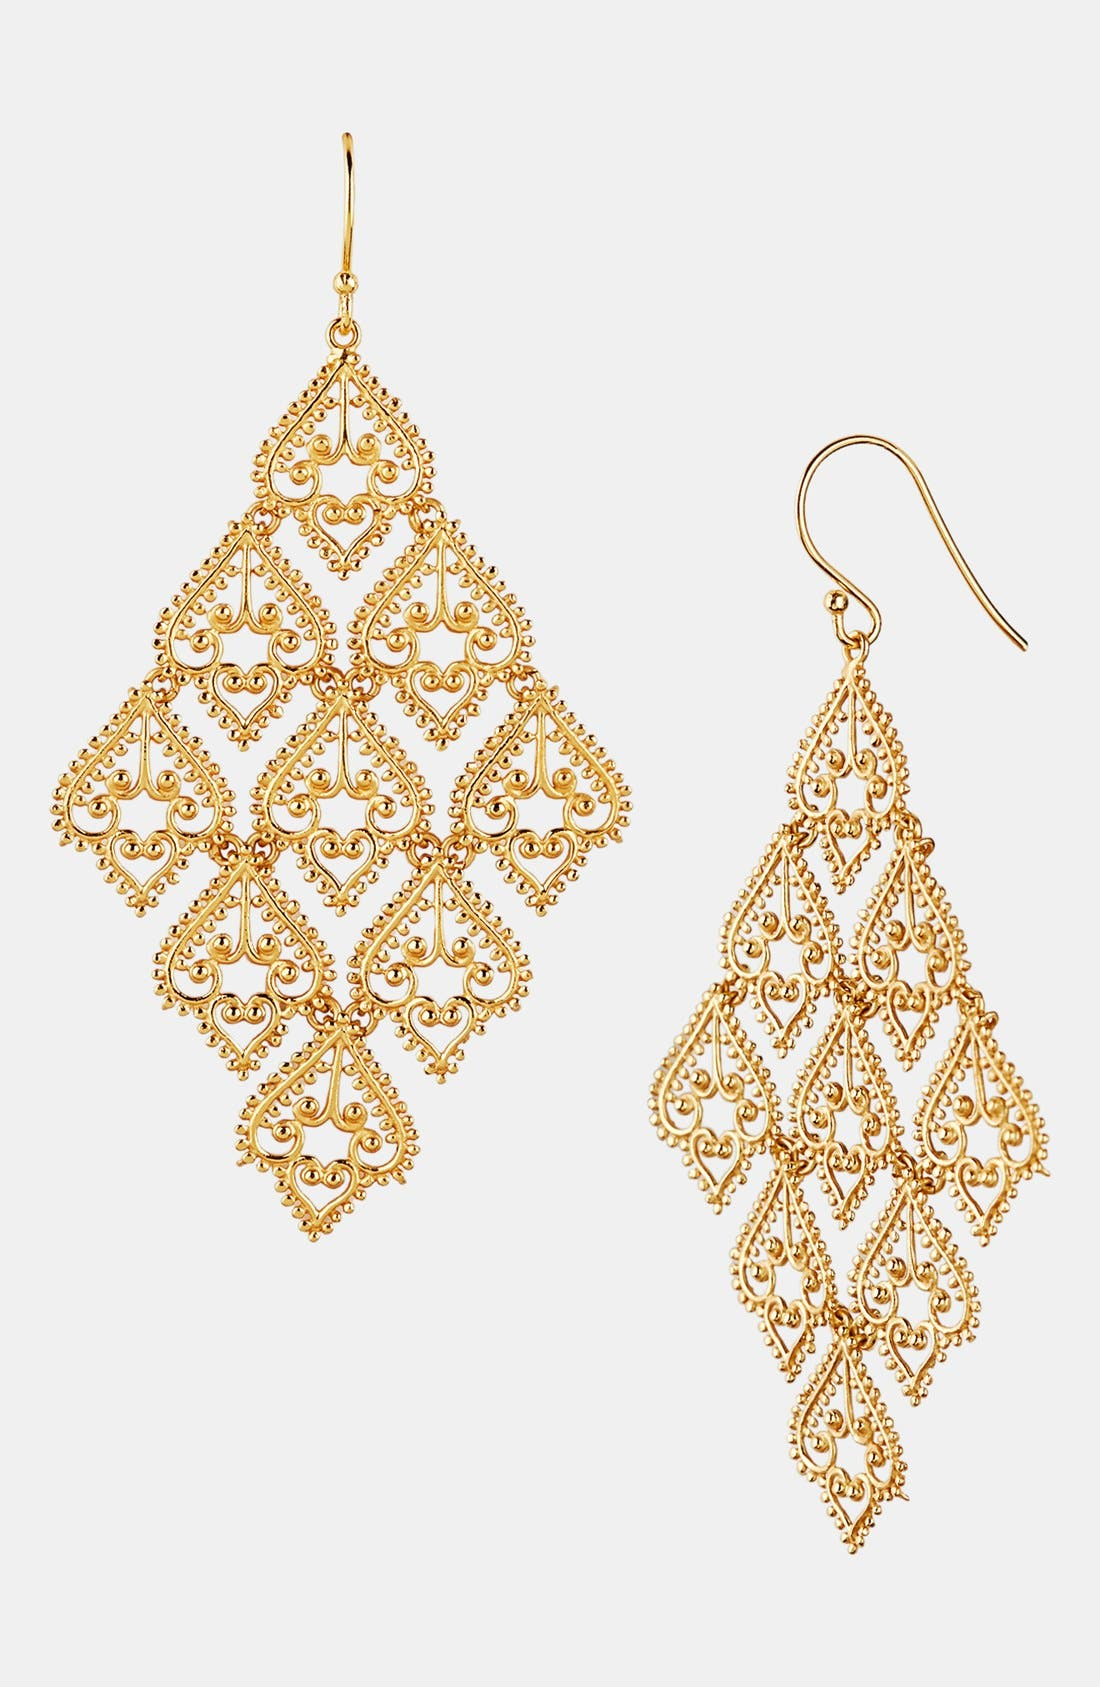 Main Image - Argento Vivo Large Chandelier Earrings